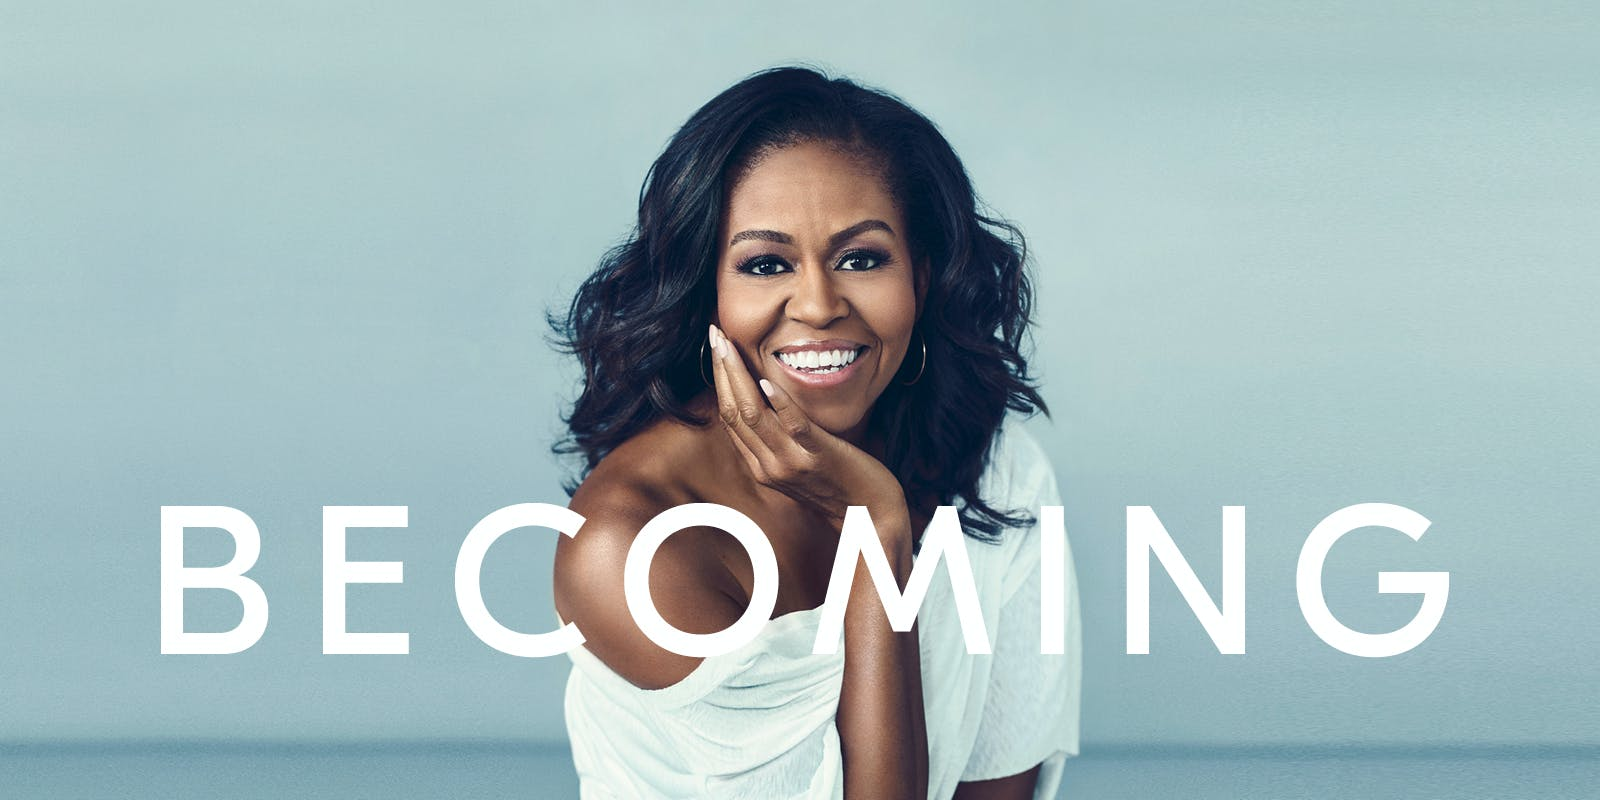 Michelle Obama documentary, Becoming, released on 6 May